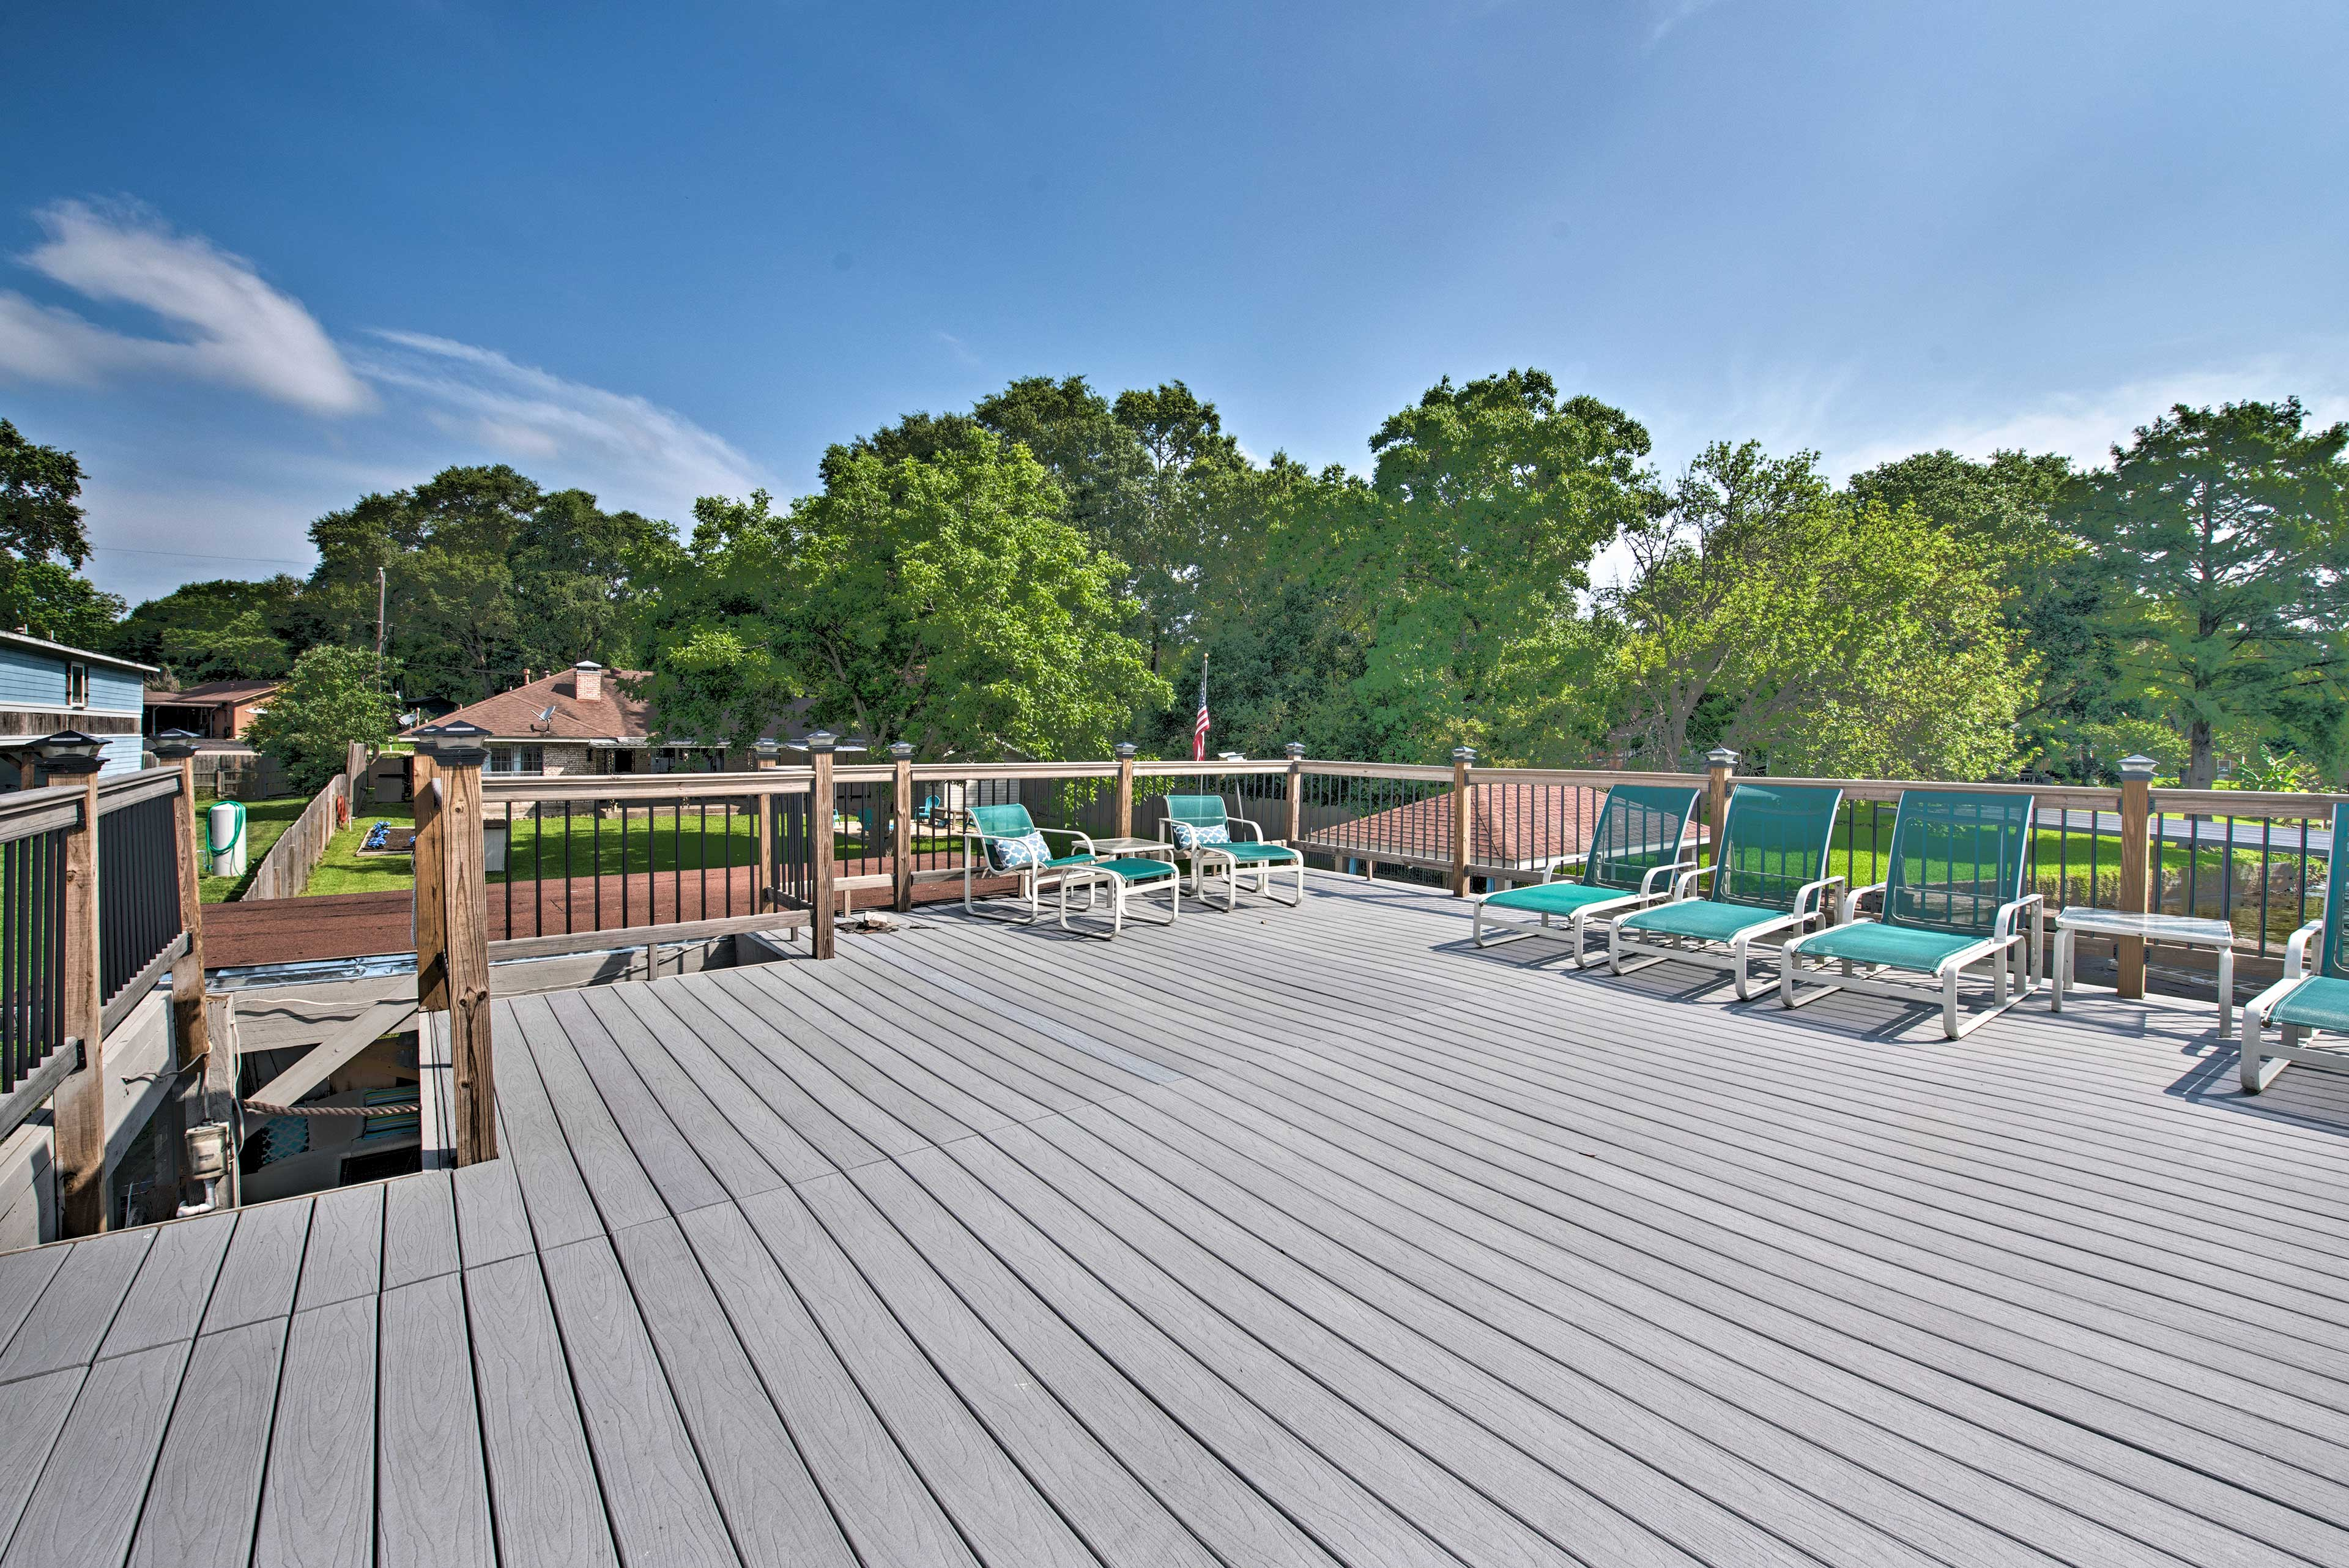 Soak up the rays on the rooftop sundeck.